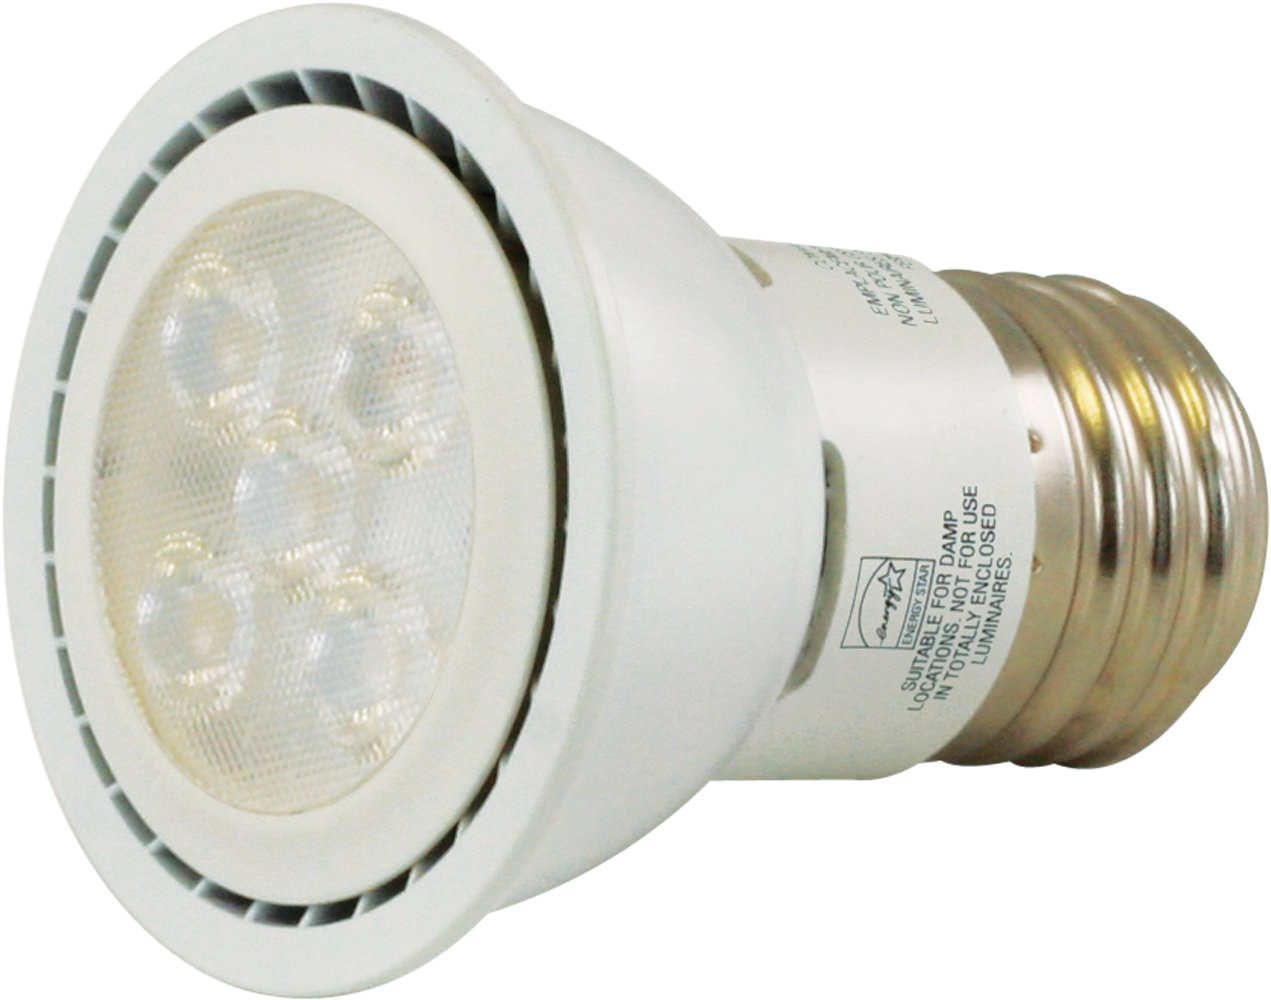 White 6W LED PAR16 lamp Liteline RC402C18R3-LED-EW-WH All-in-One 4-inch LED Recessed Combo with Remodel Housing Gimbal Trim